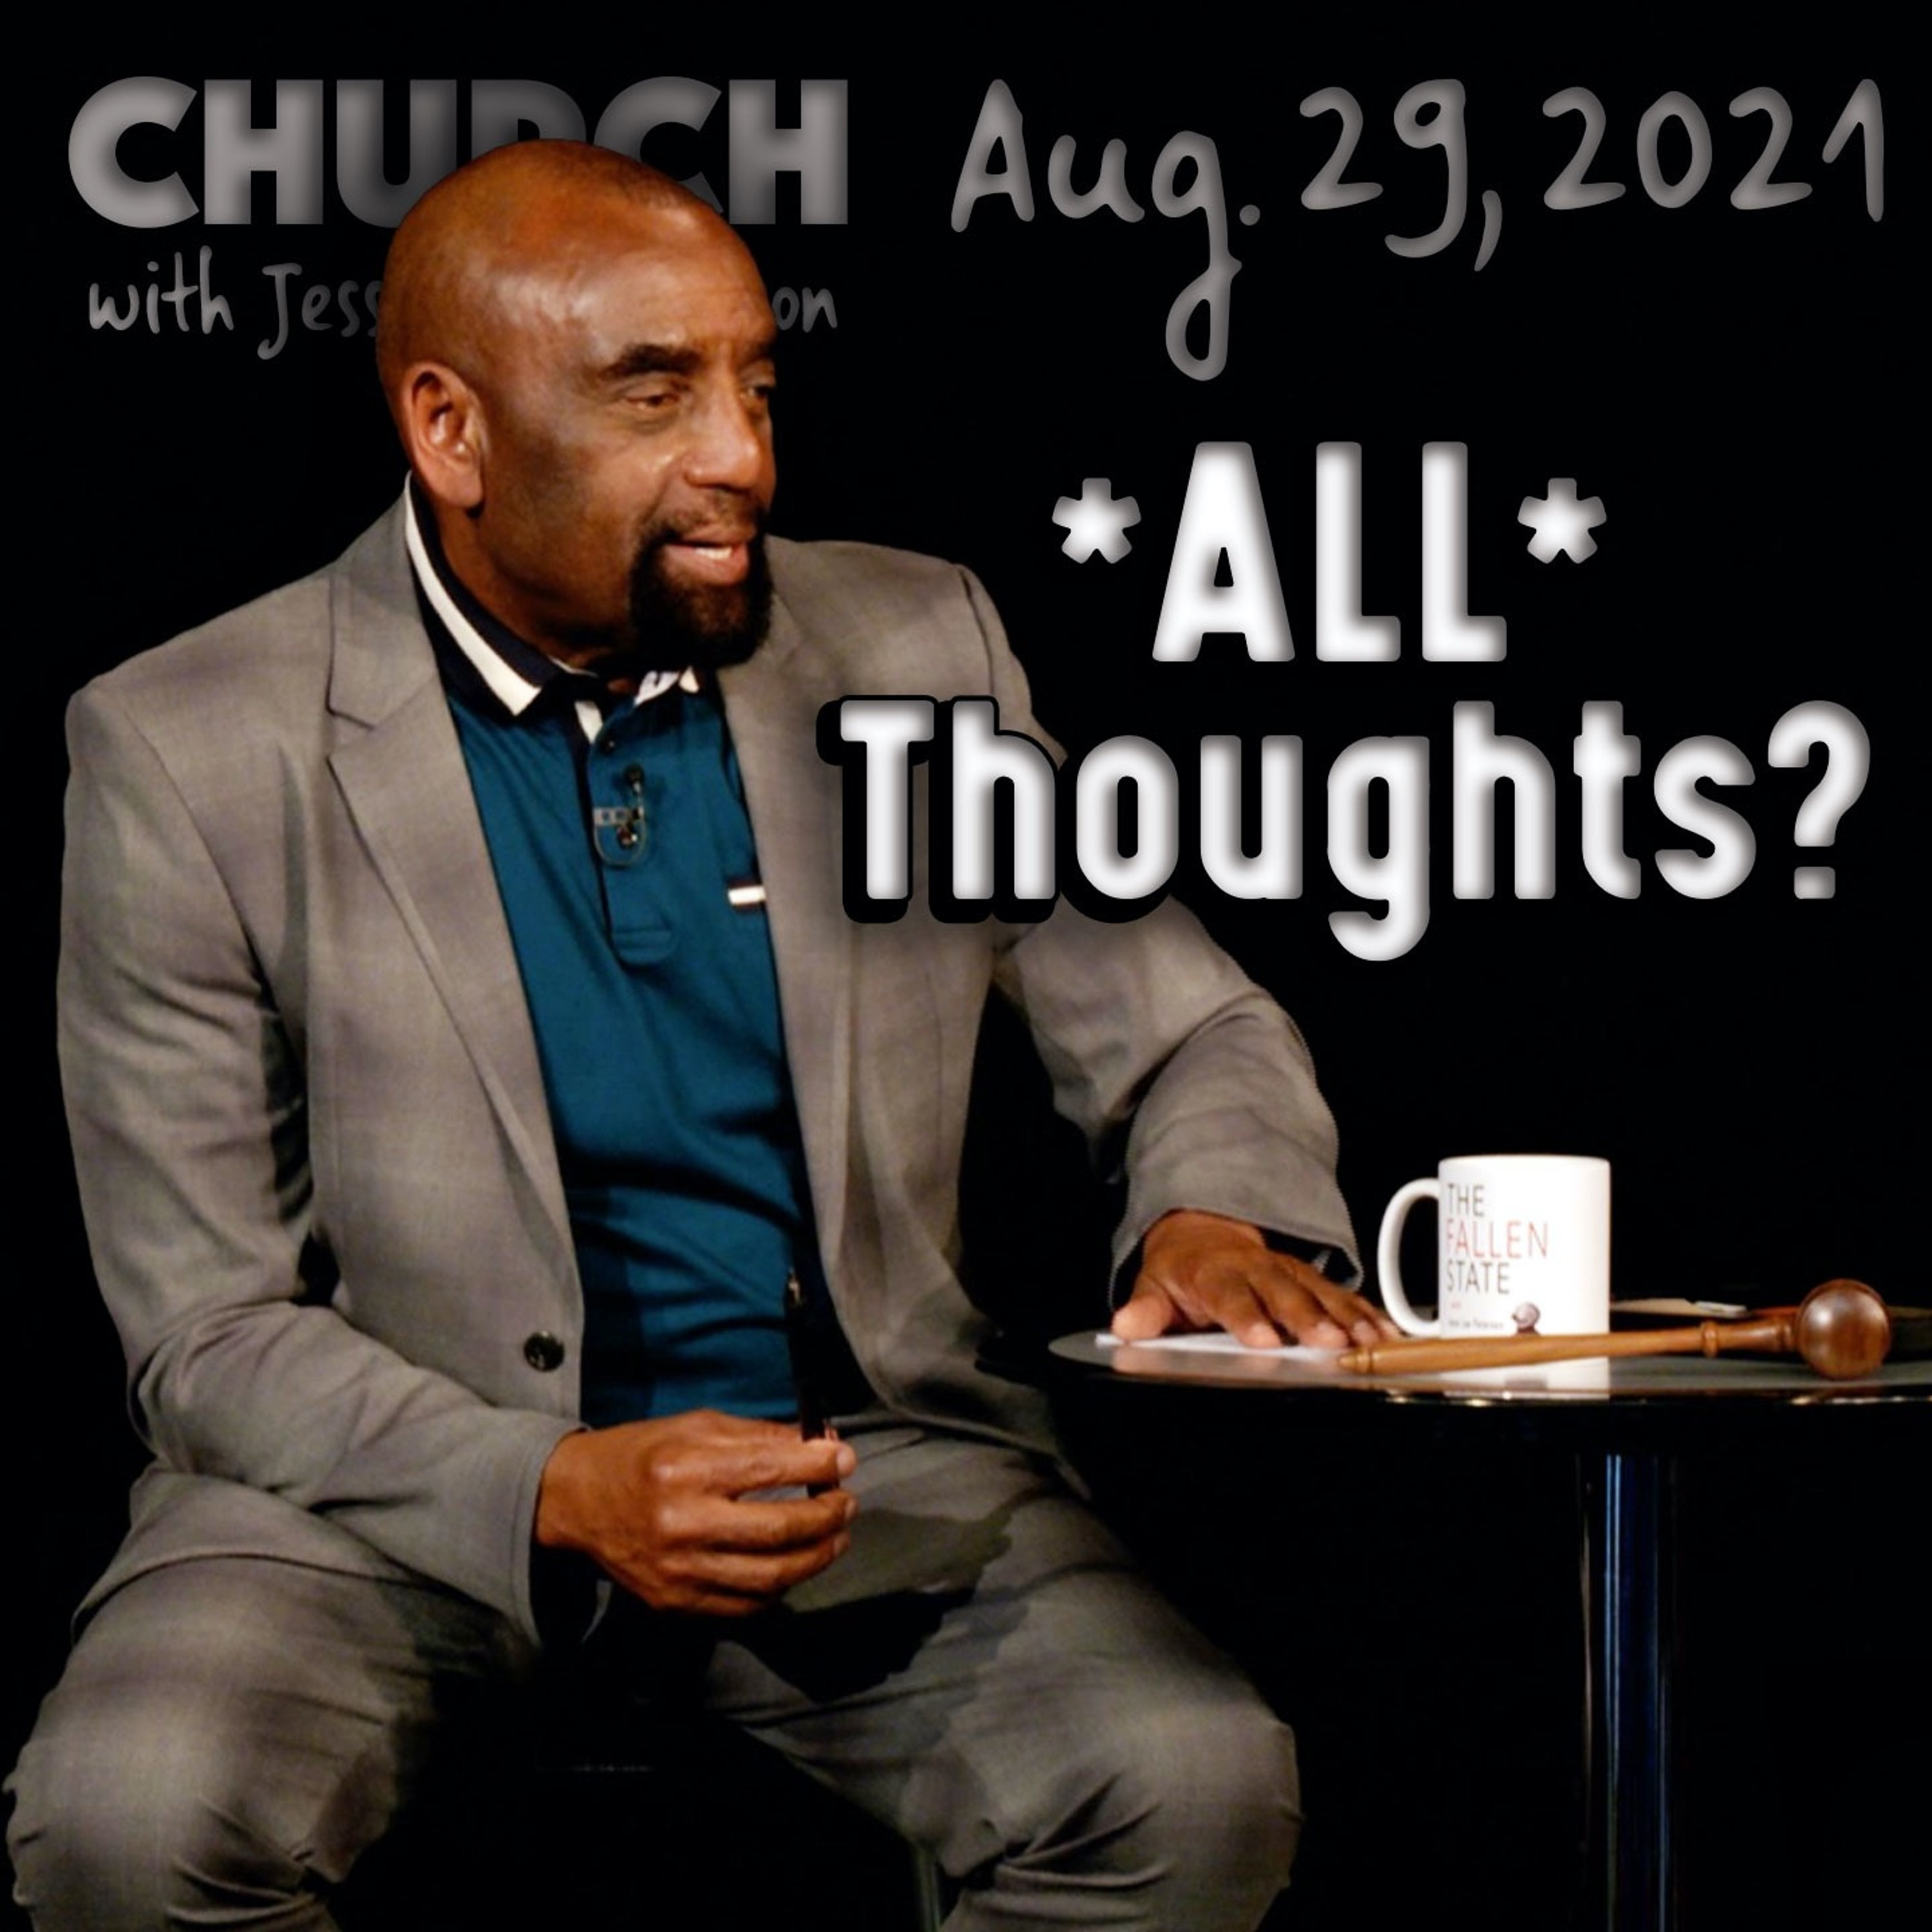 08/29/21 Are You Absolutely Convinced All Thoughts Are Lies? (Church)